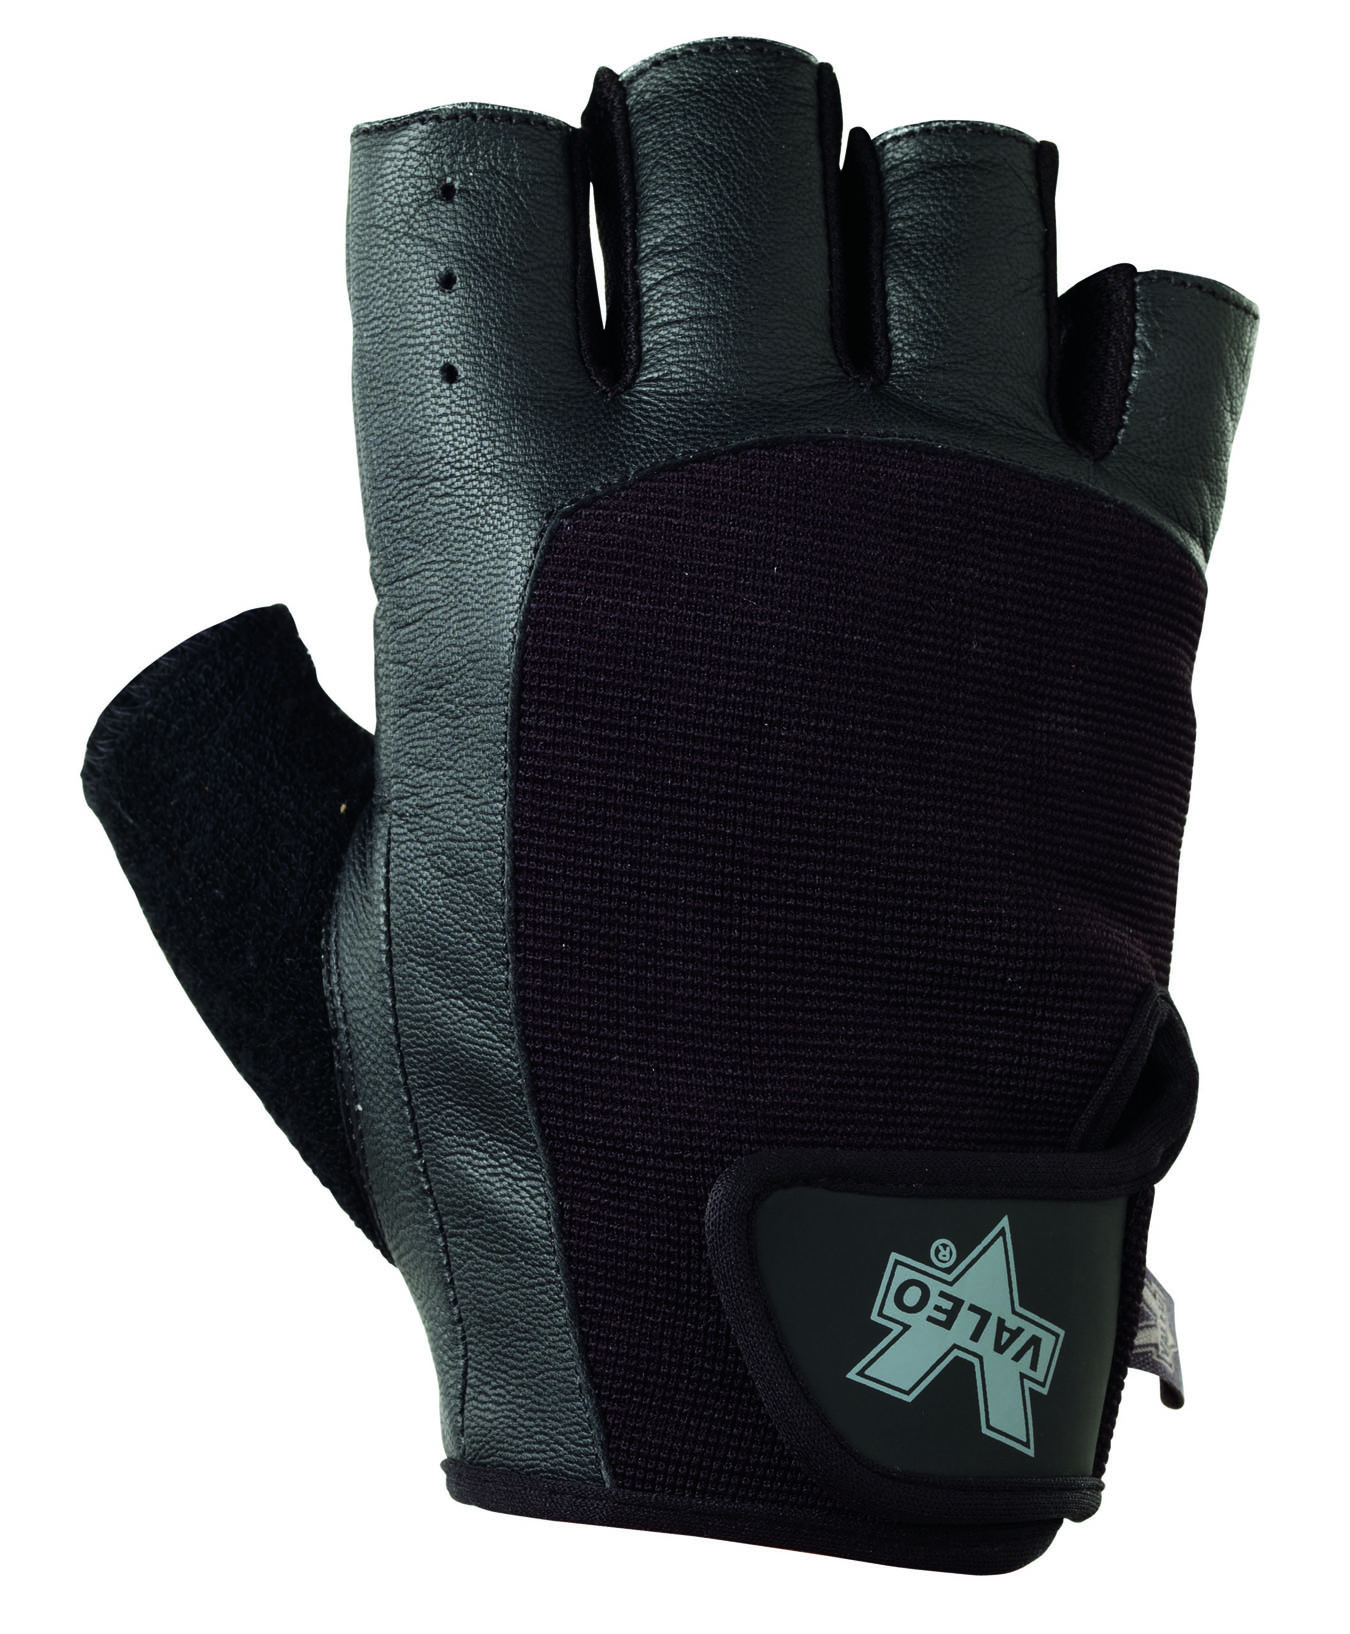 Valeo Standard Leather Lifting Gloves